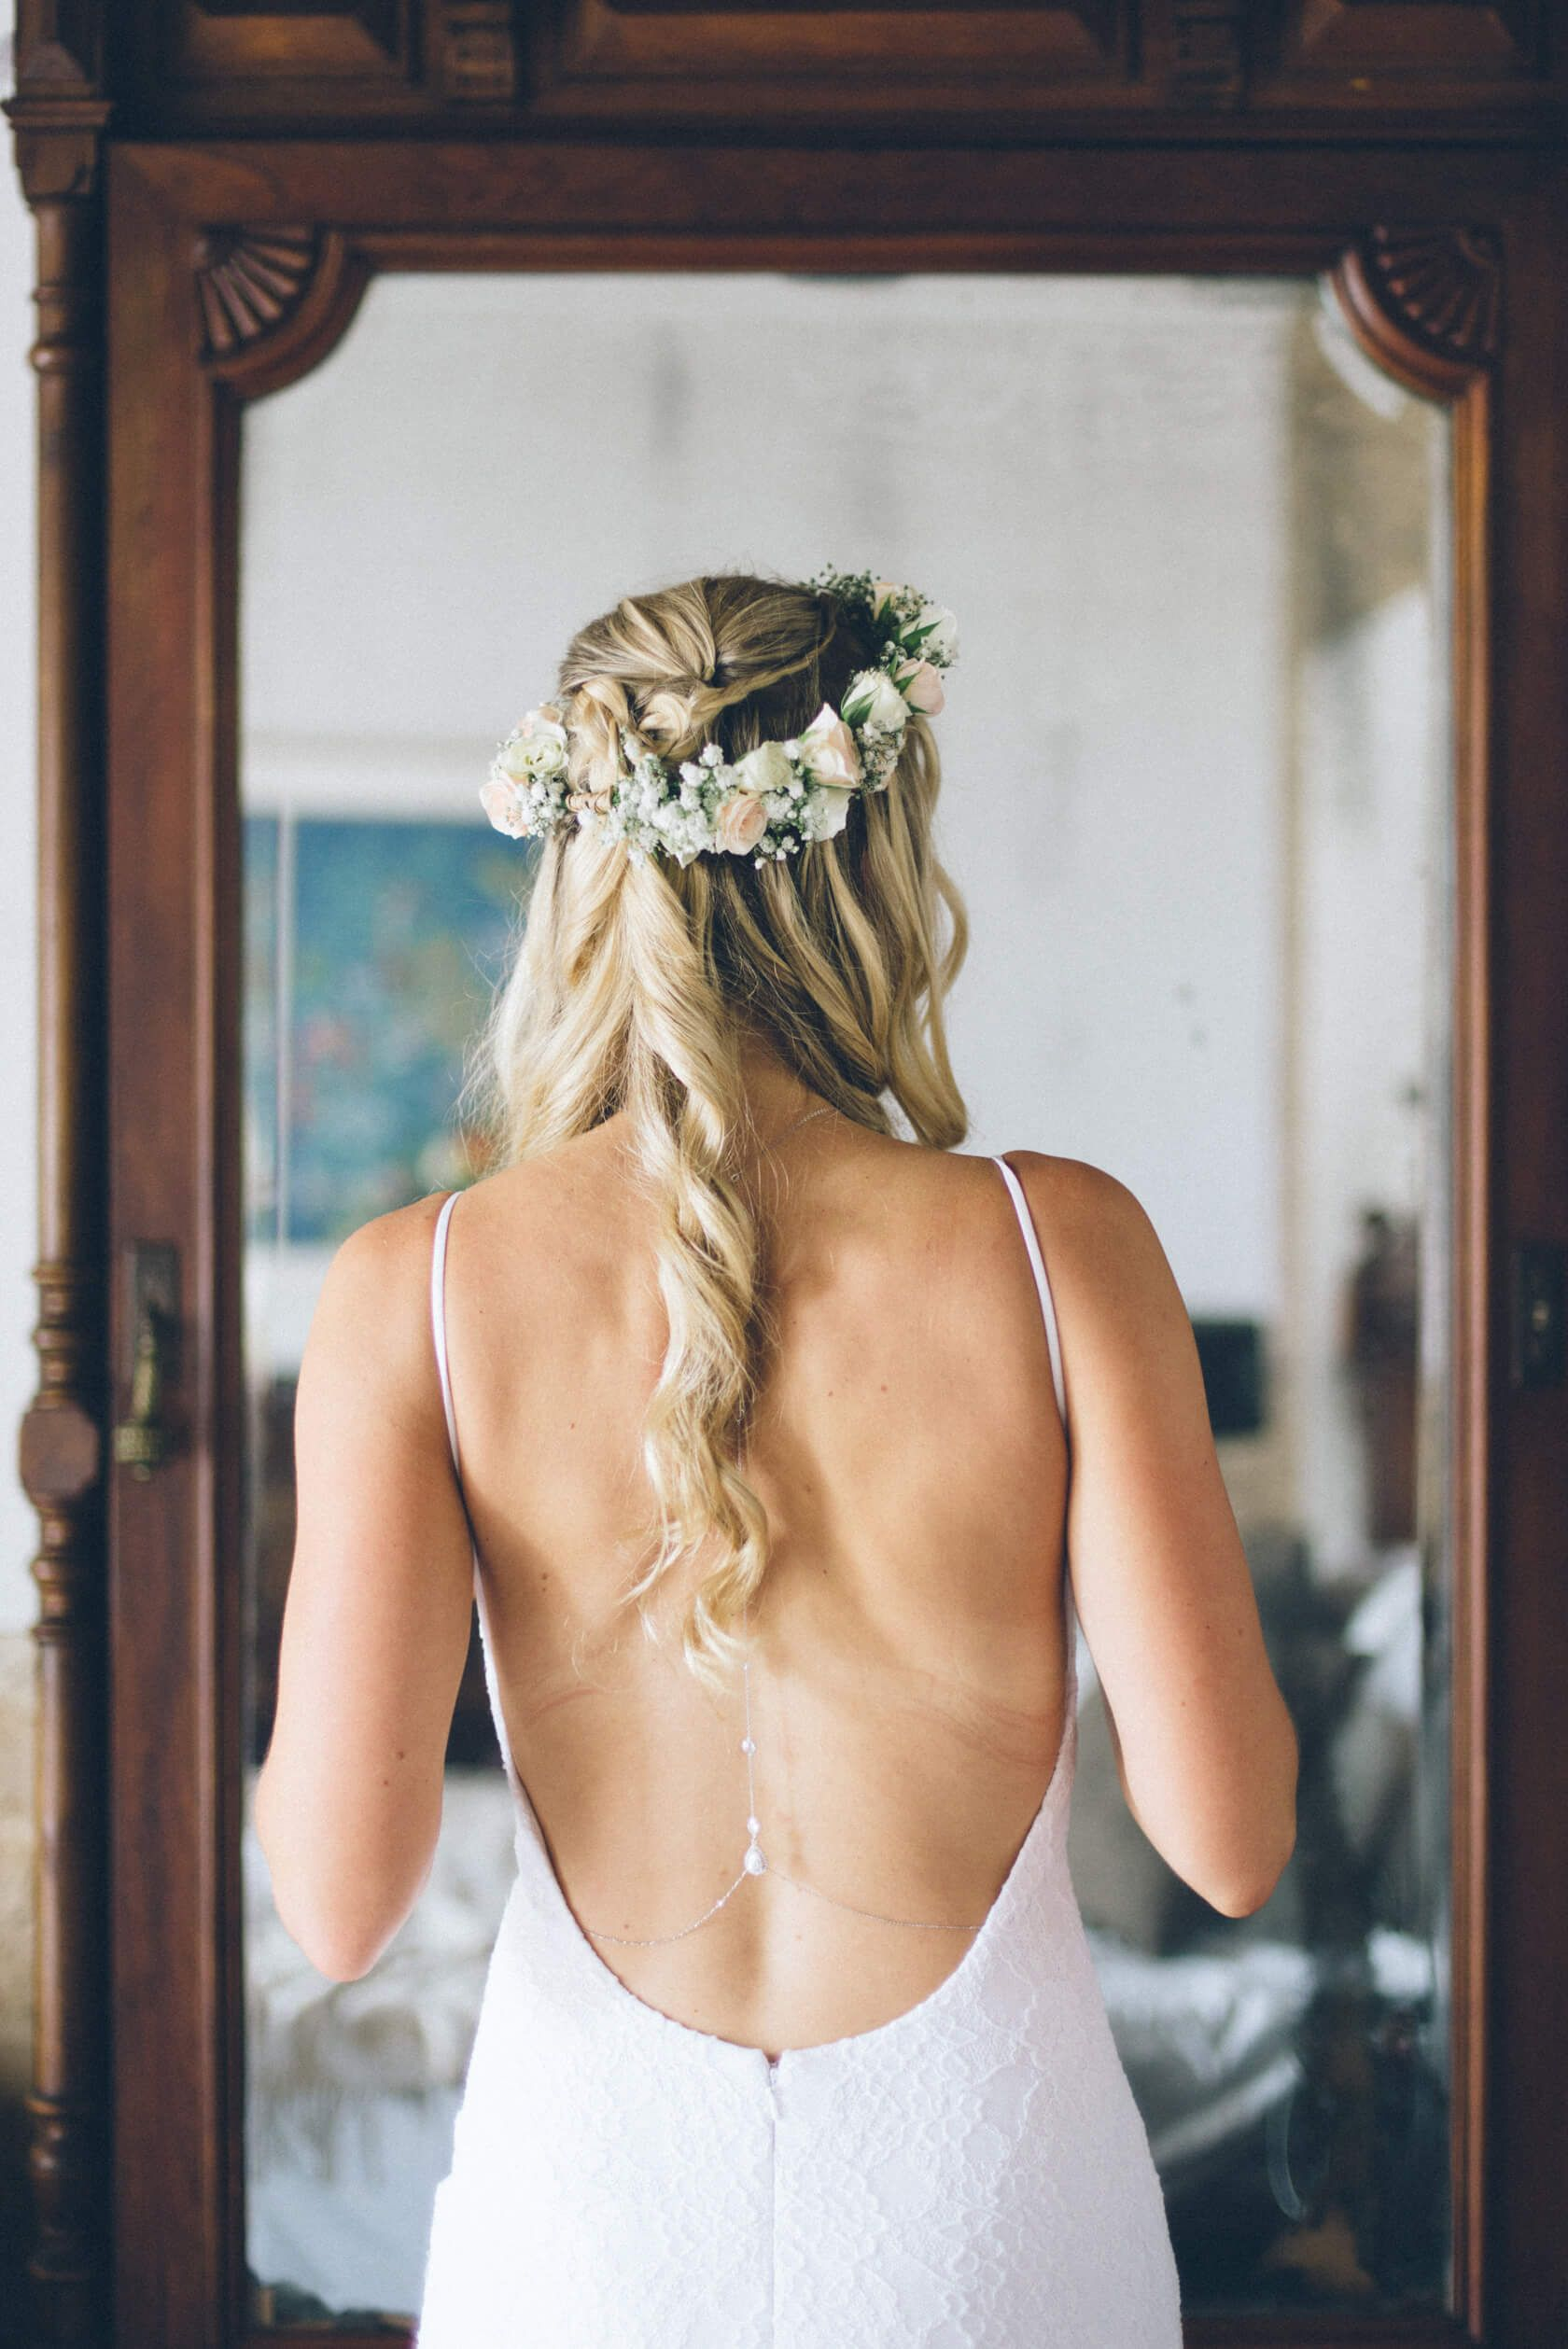 Getting married in Spain in an authentic villa near Barcelona, easier than you think! Destination Wedding Photographer Spain. Barcelona wedding photographer